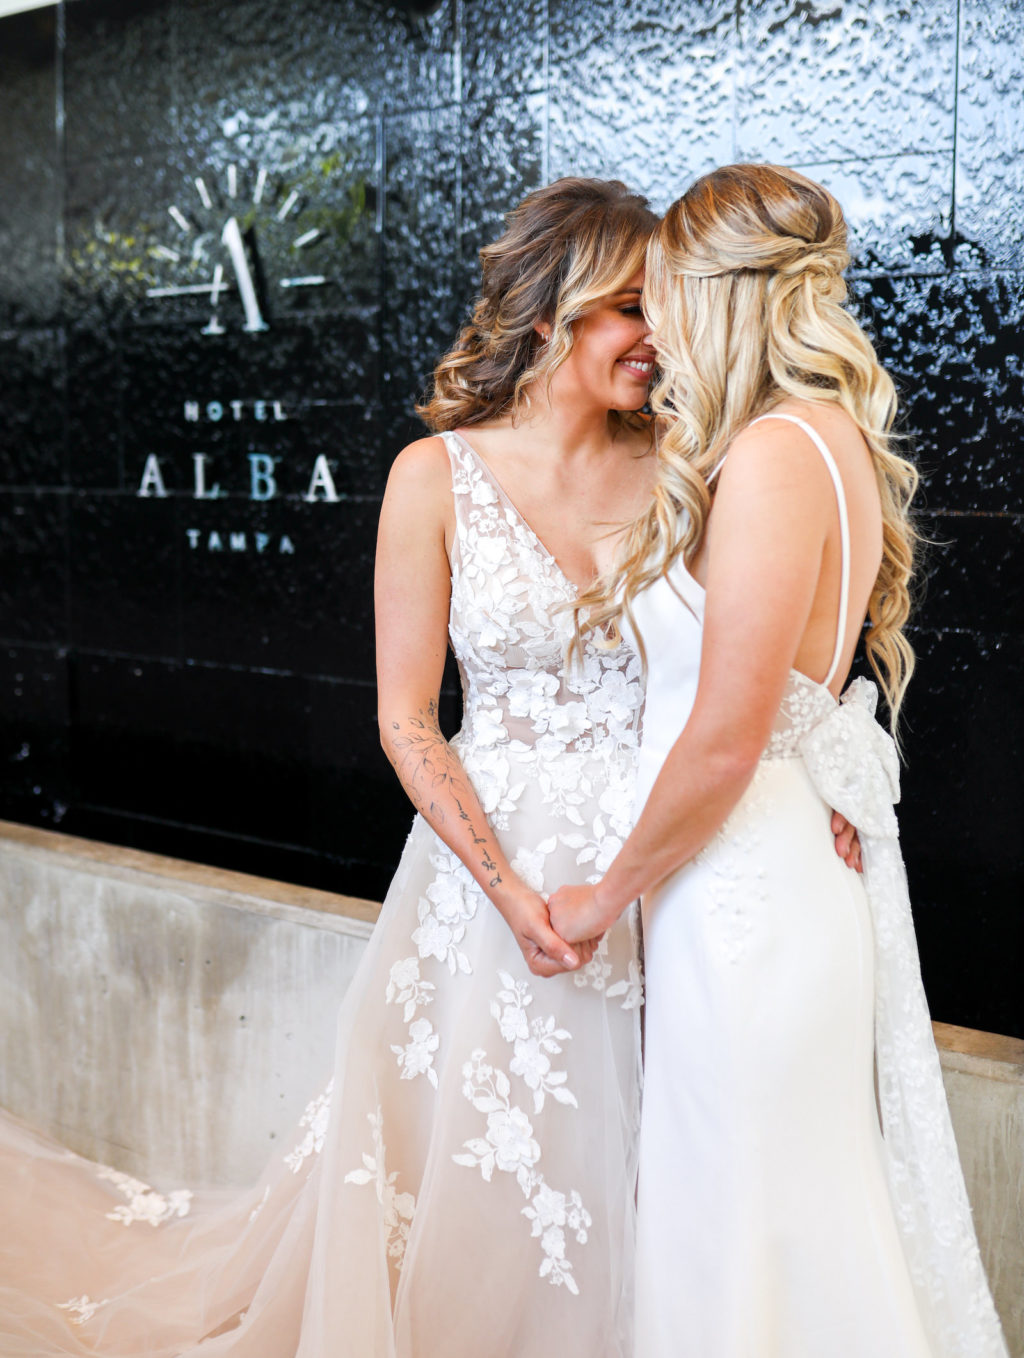 Gay LGBTQ+ Pride Wedding, Lesbian Brides in Floral Applique Lace, Illusion and Tulle Off White Plunging V Neckline Wedding Dress, Fitted Spaghetti Strap Open Back with Bow Wedding Dress   Tampa Bay Wedding Venue Hotel Alba